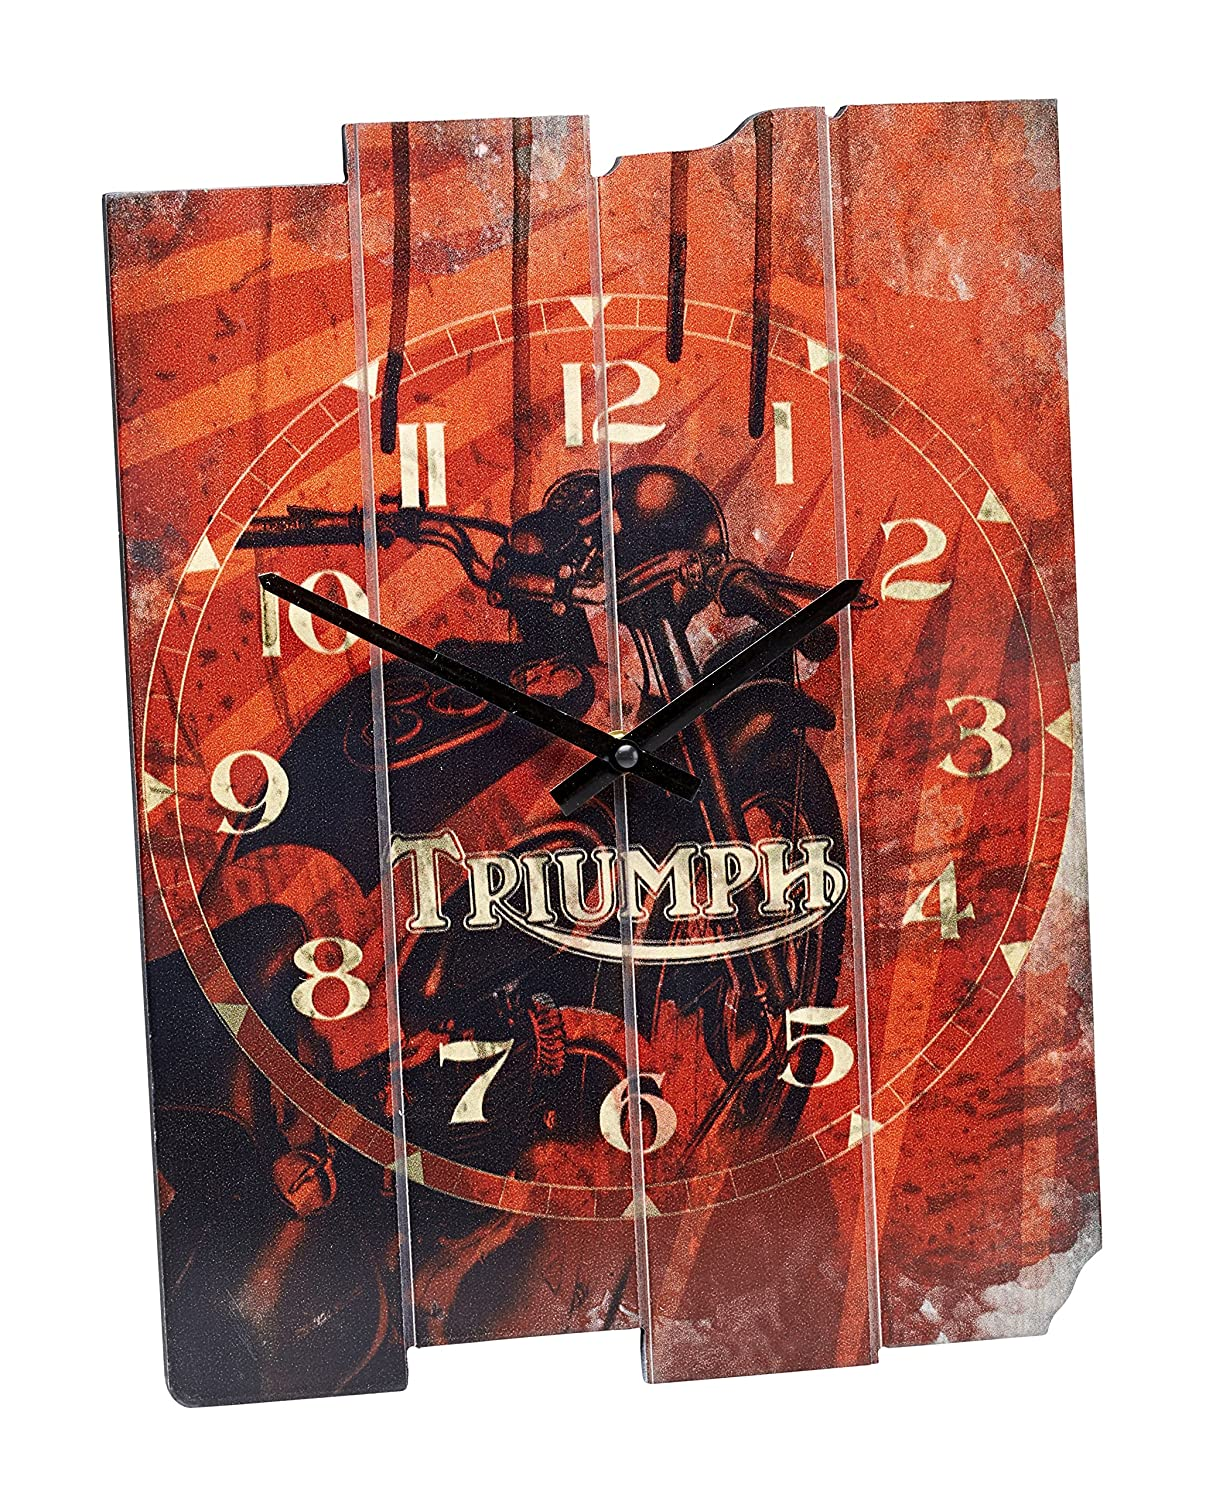 Genuine Triumph Motorcycles Wall Clock